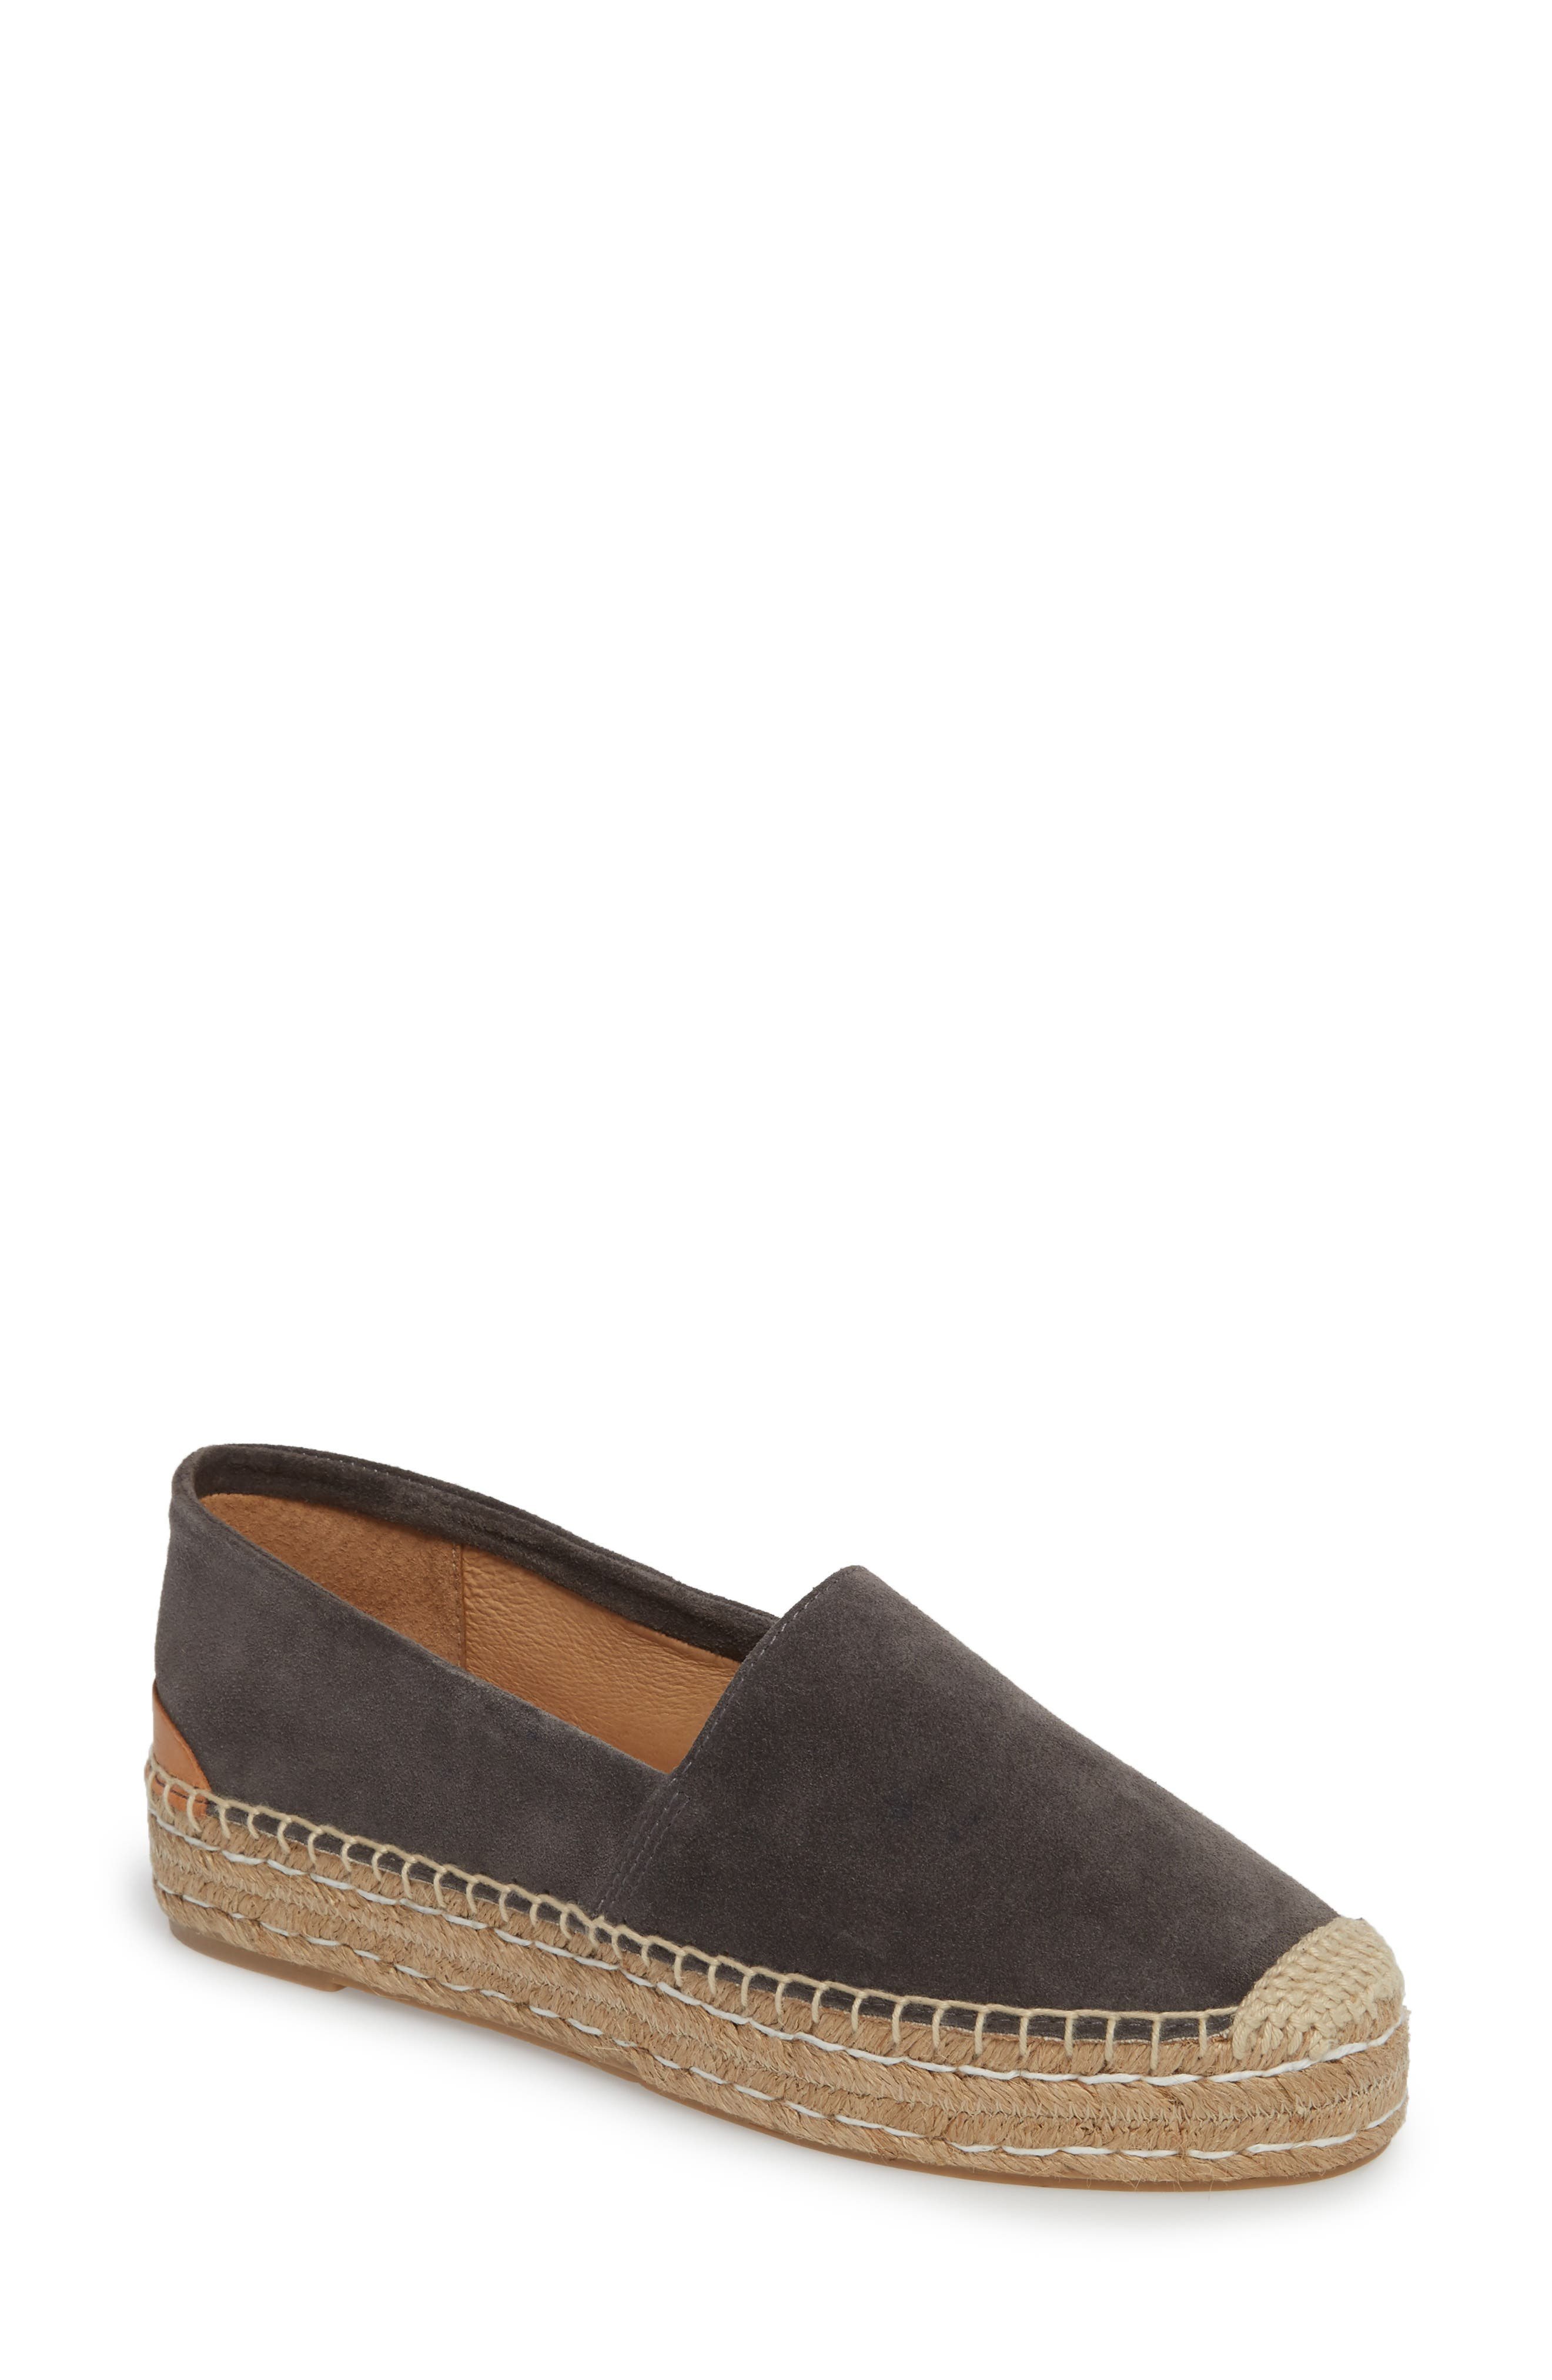 Abigail Espadrille Slip-On,                             Main thumbnail 1, color,                             CHARCOAL SUEDE